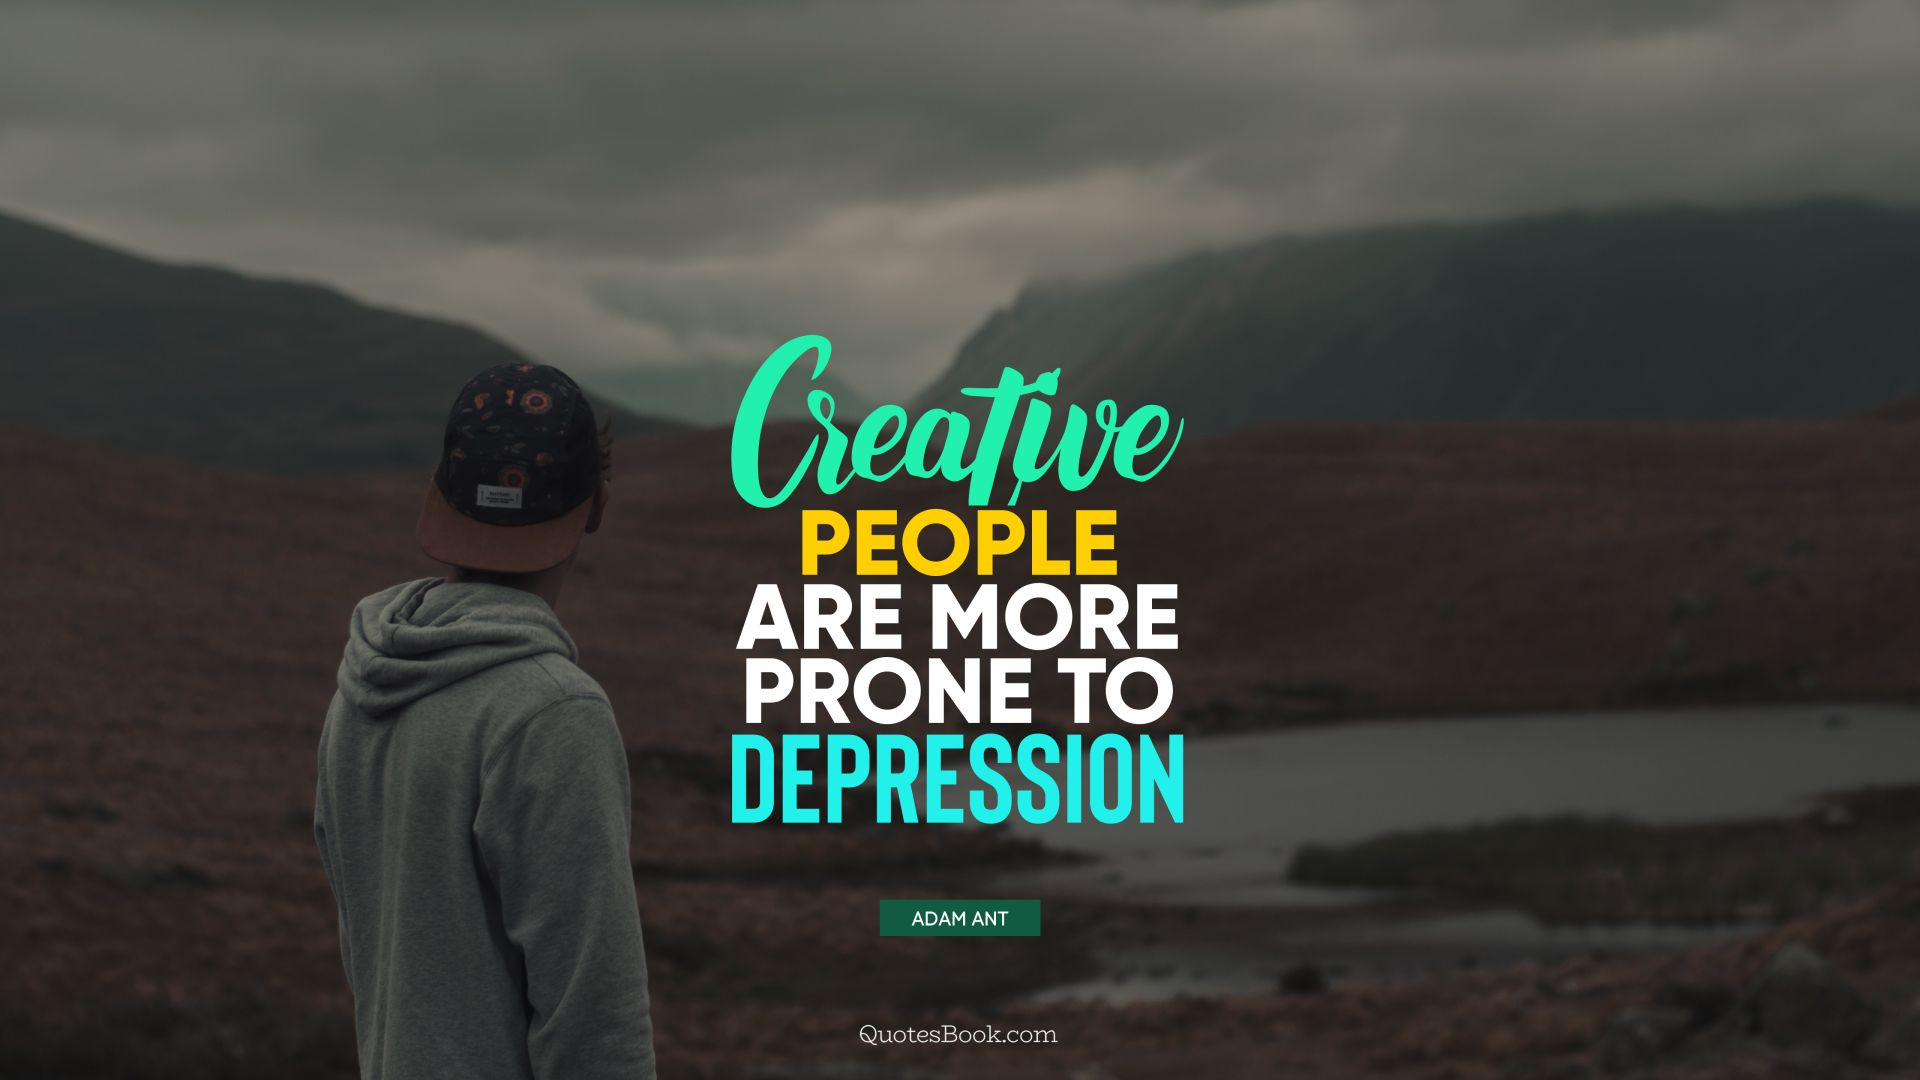 Creative people are more prone to depression. - Quote by Adam Ant